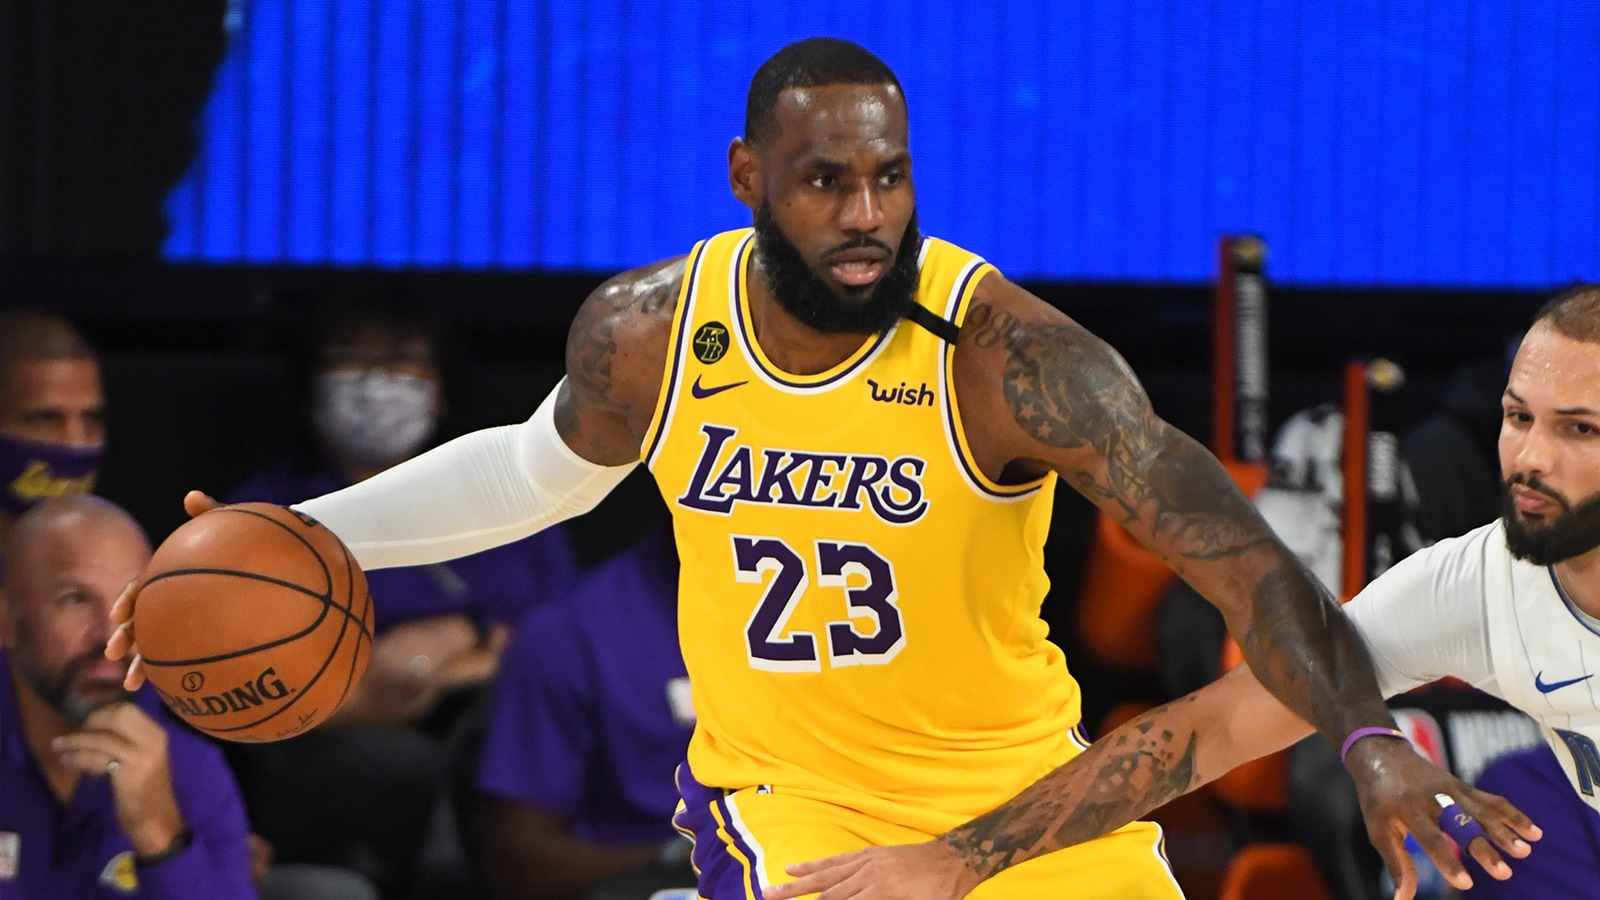 LeBron James in action for the Lakers in Orlando